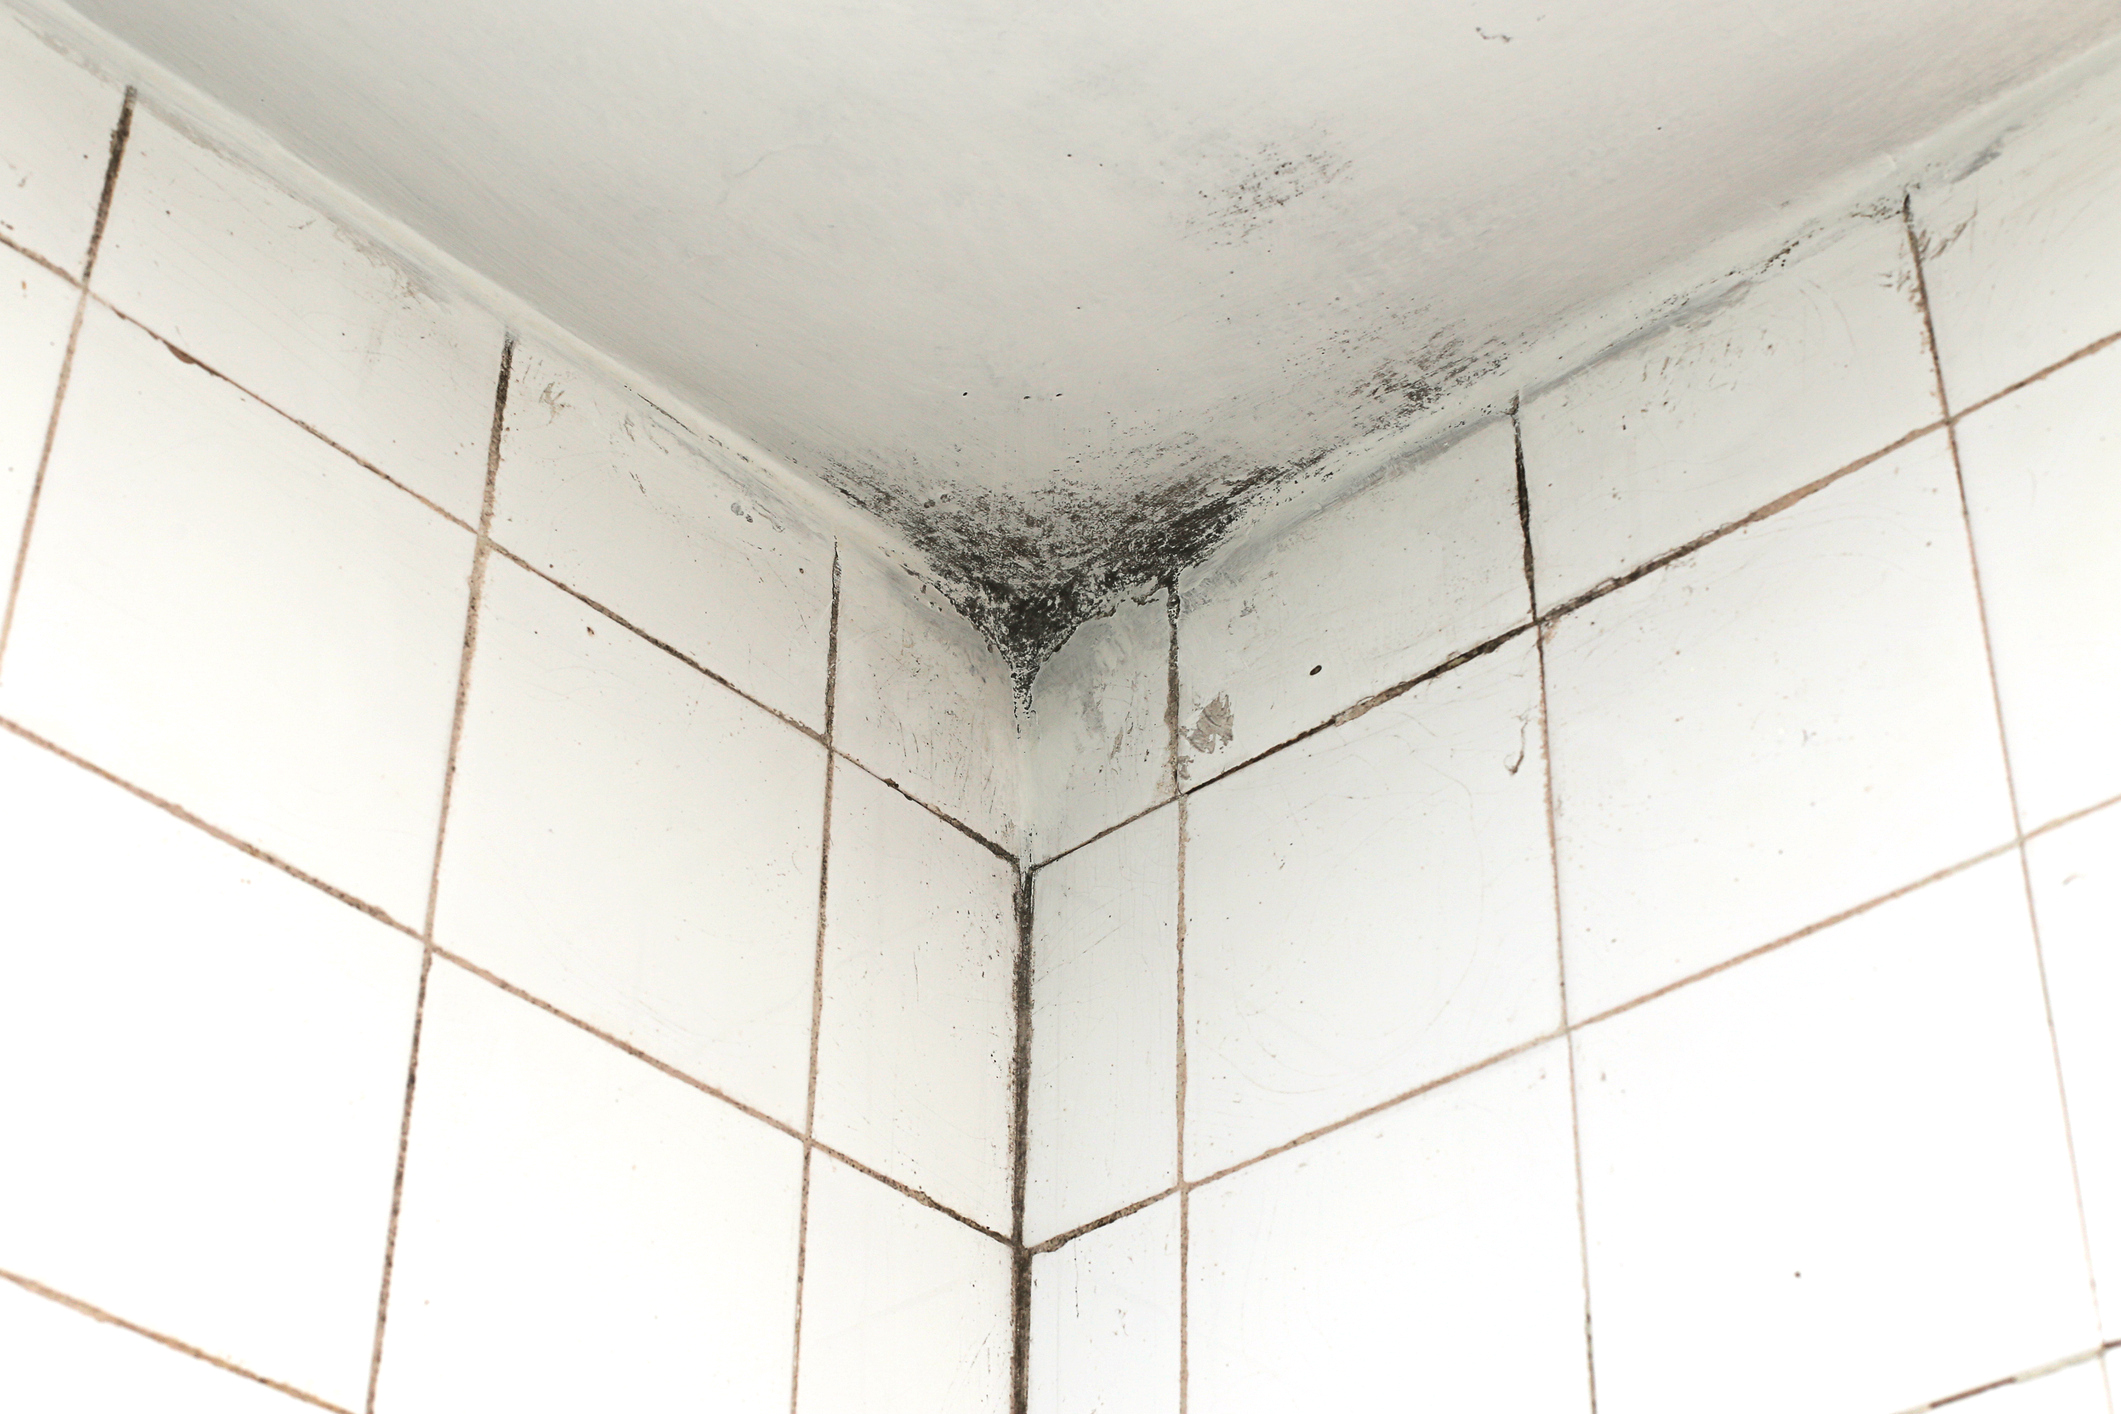 Bathroom ceiling mildew - Bathroom Ceiling Mildew 48